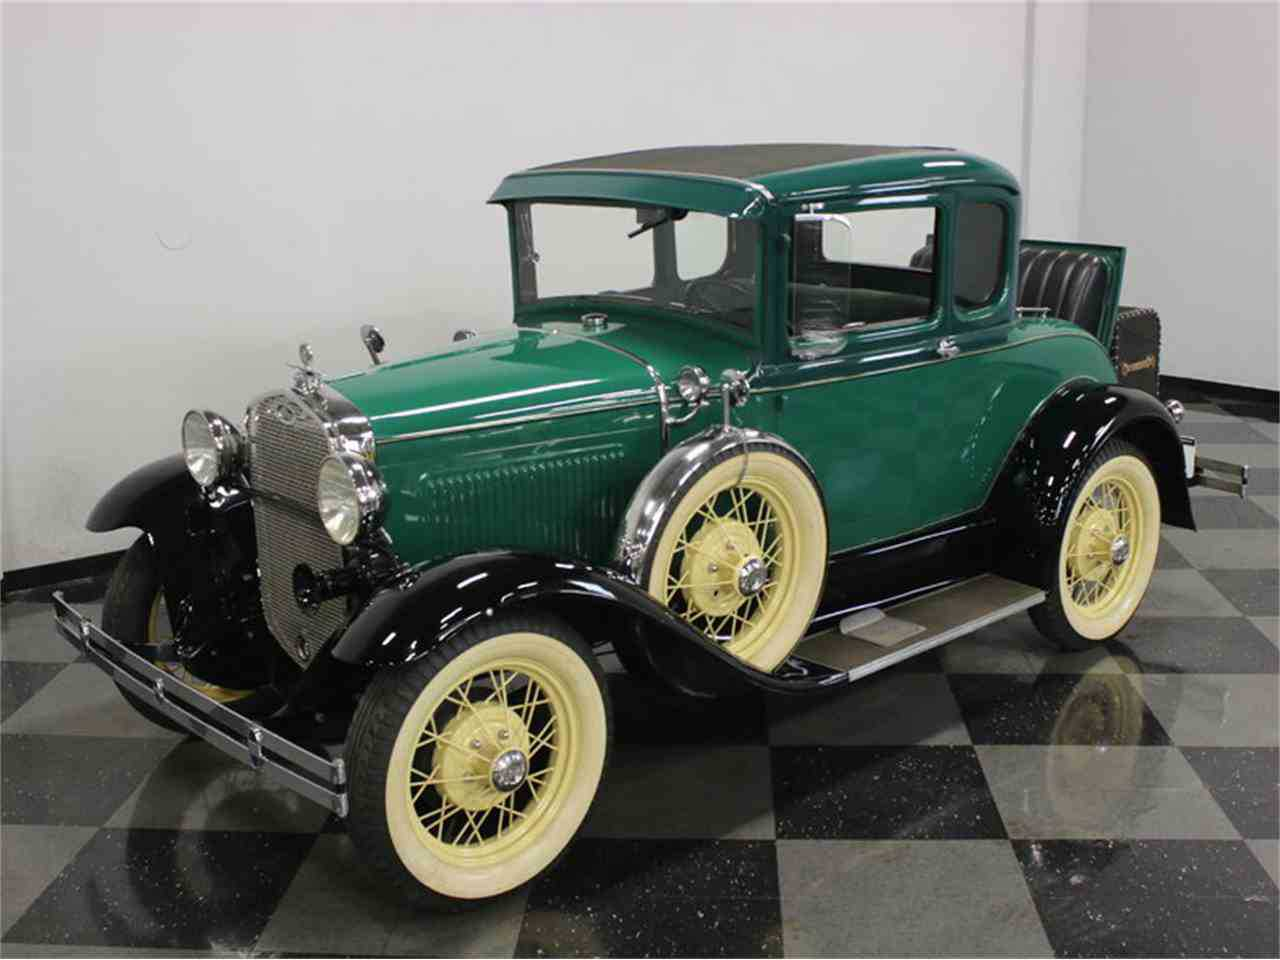 1930 Ford A Deluxe Coupe for sale in Fort Worth, TX | A2693893